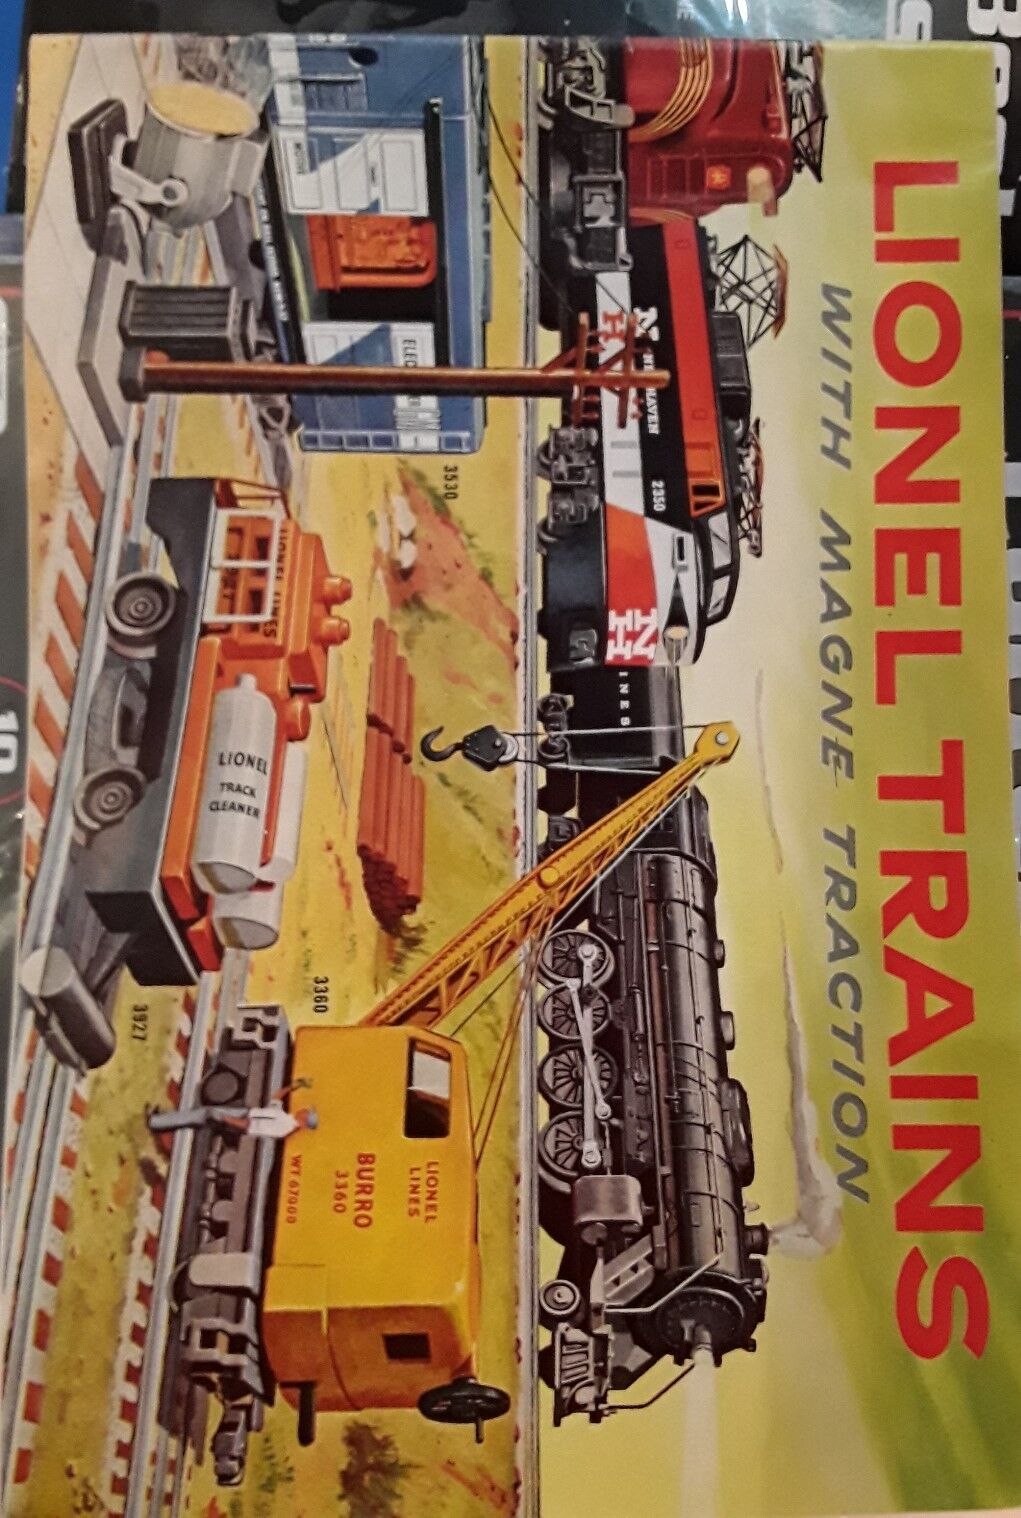 Lionel Trains with magne traction Catalog 1956 full color good condition Vintage